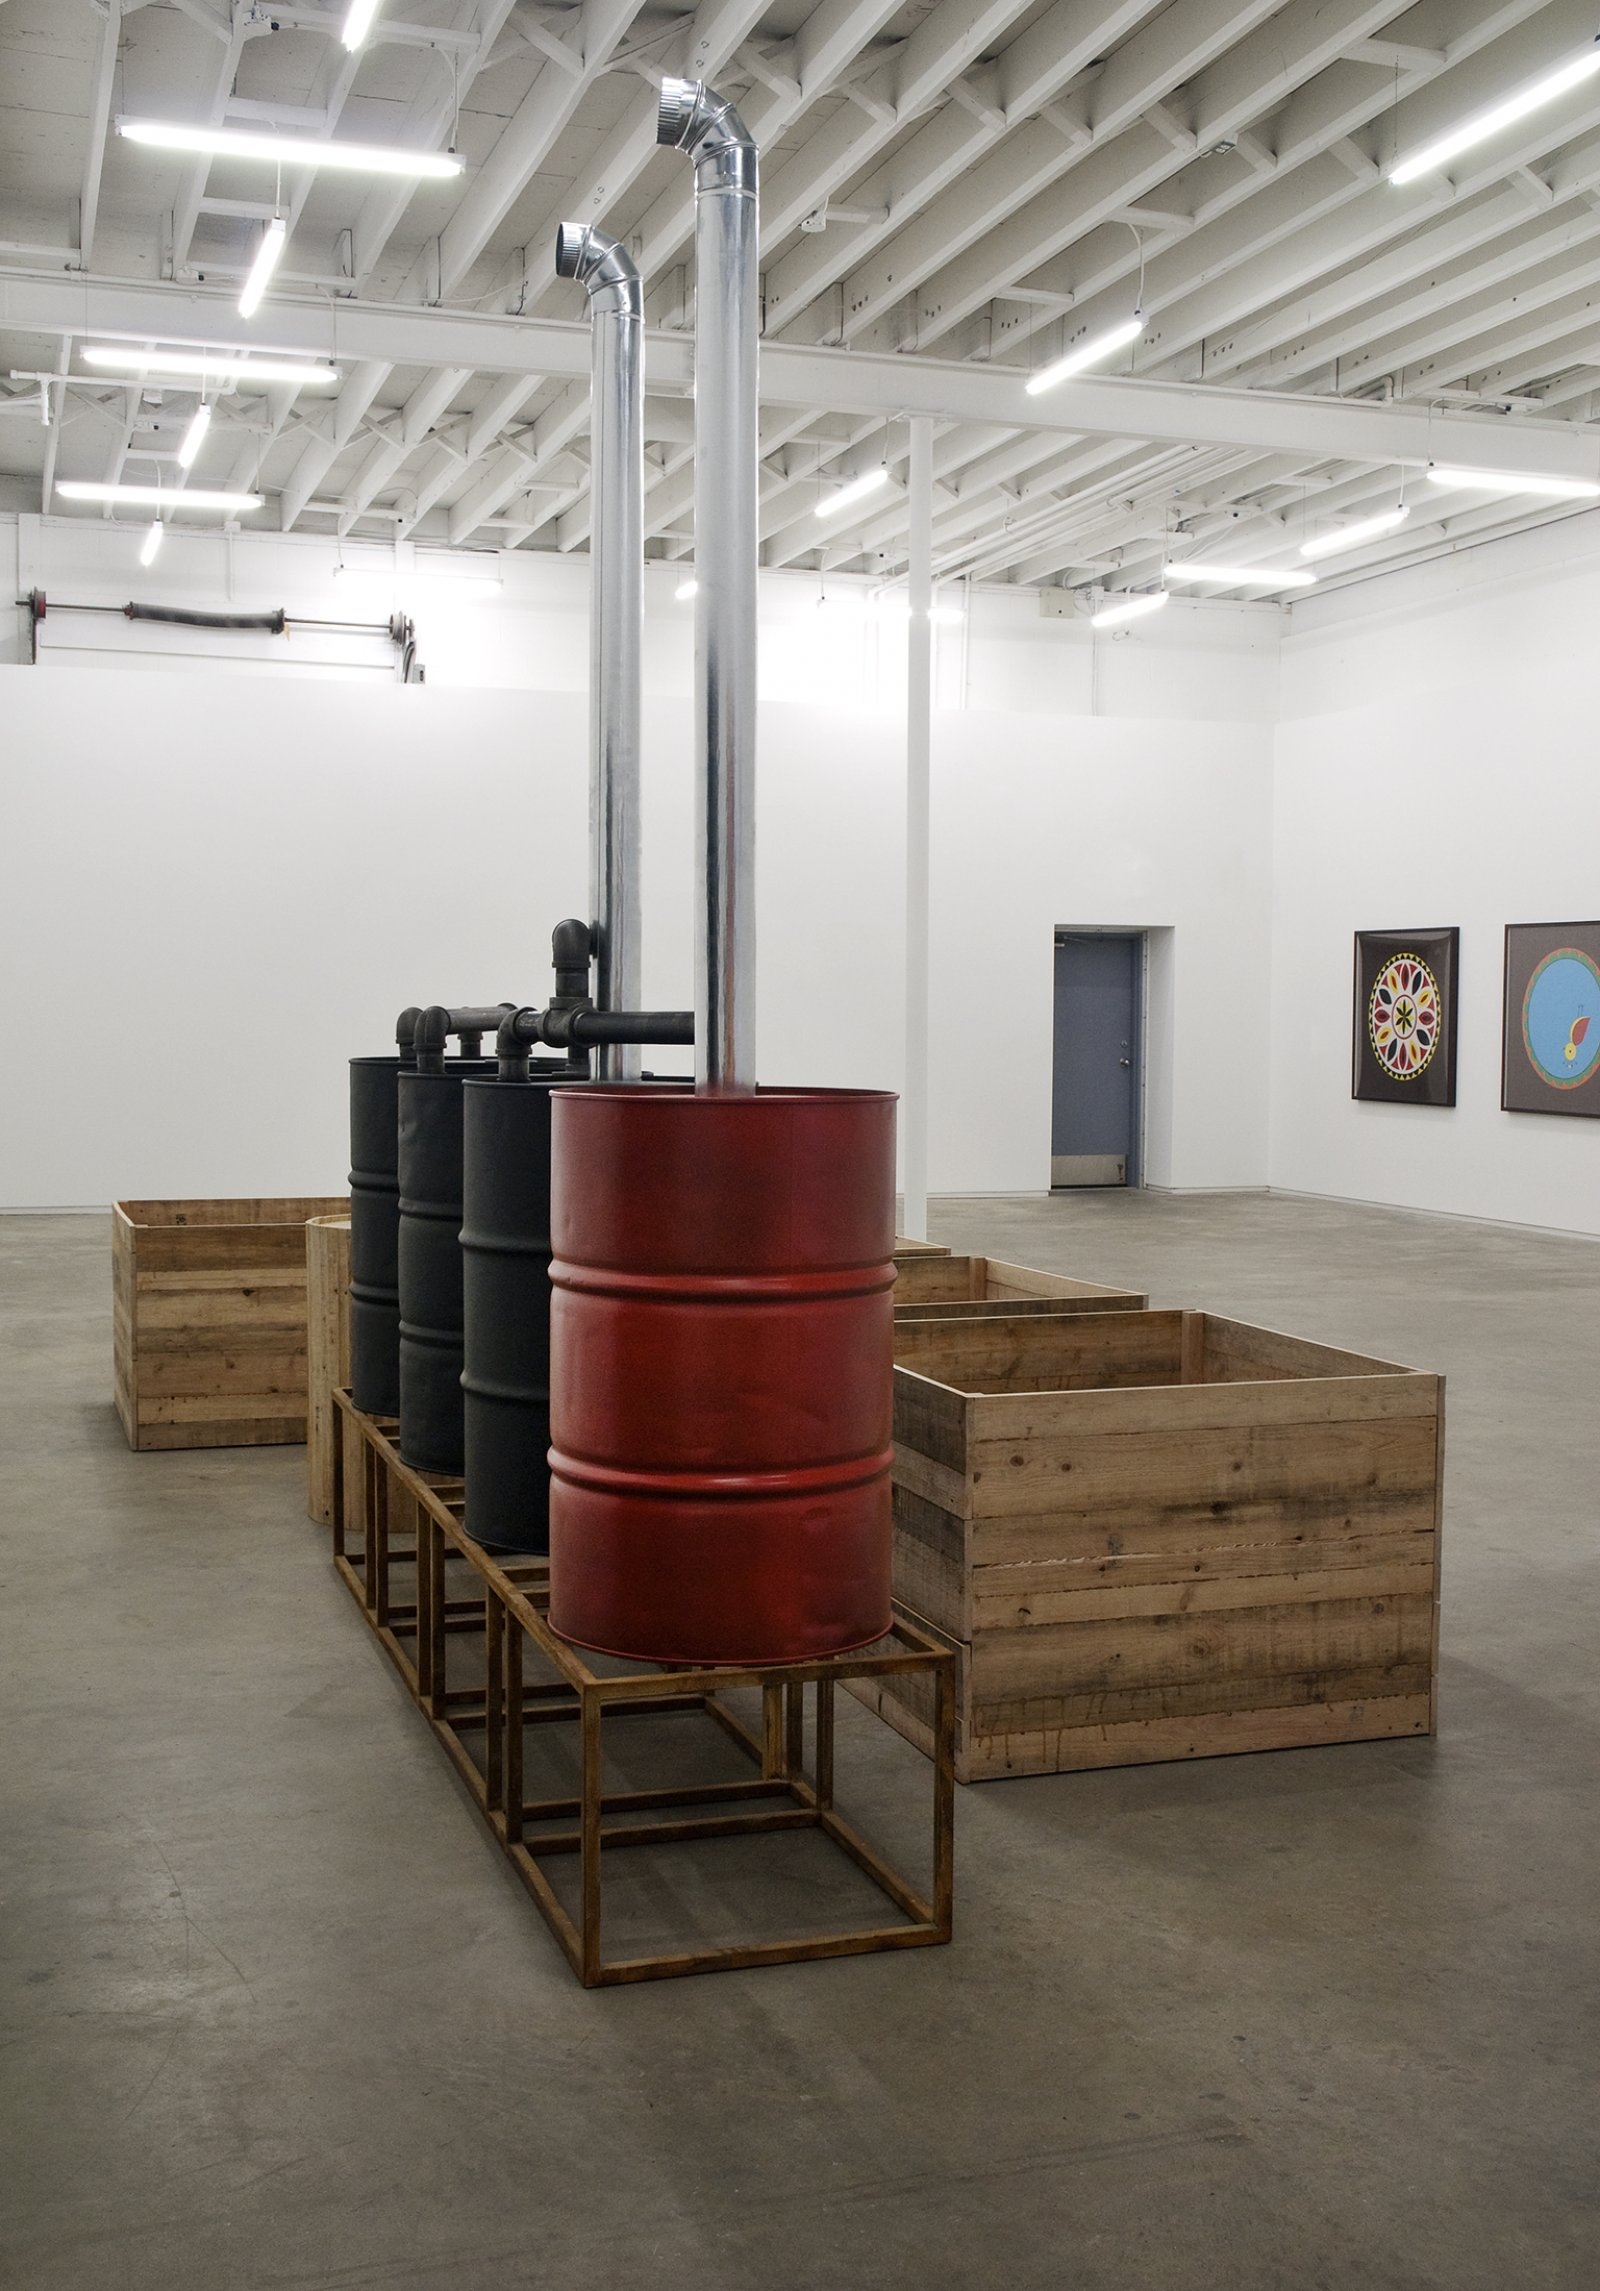 Myfanwy MacLeod, Everything Seems Empty Without You, 2009, metal oil drums, metal sand, metal pipes, wooden boxes, wooden barrel, 118 x 332 x 94 in. (300 x 843 x 239 cm) by Myfanwy MacLeod